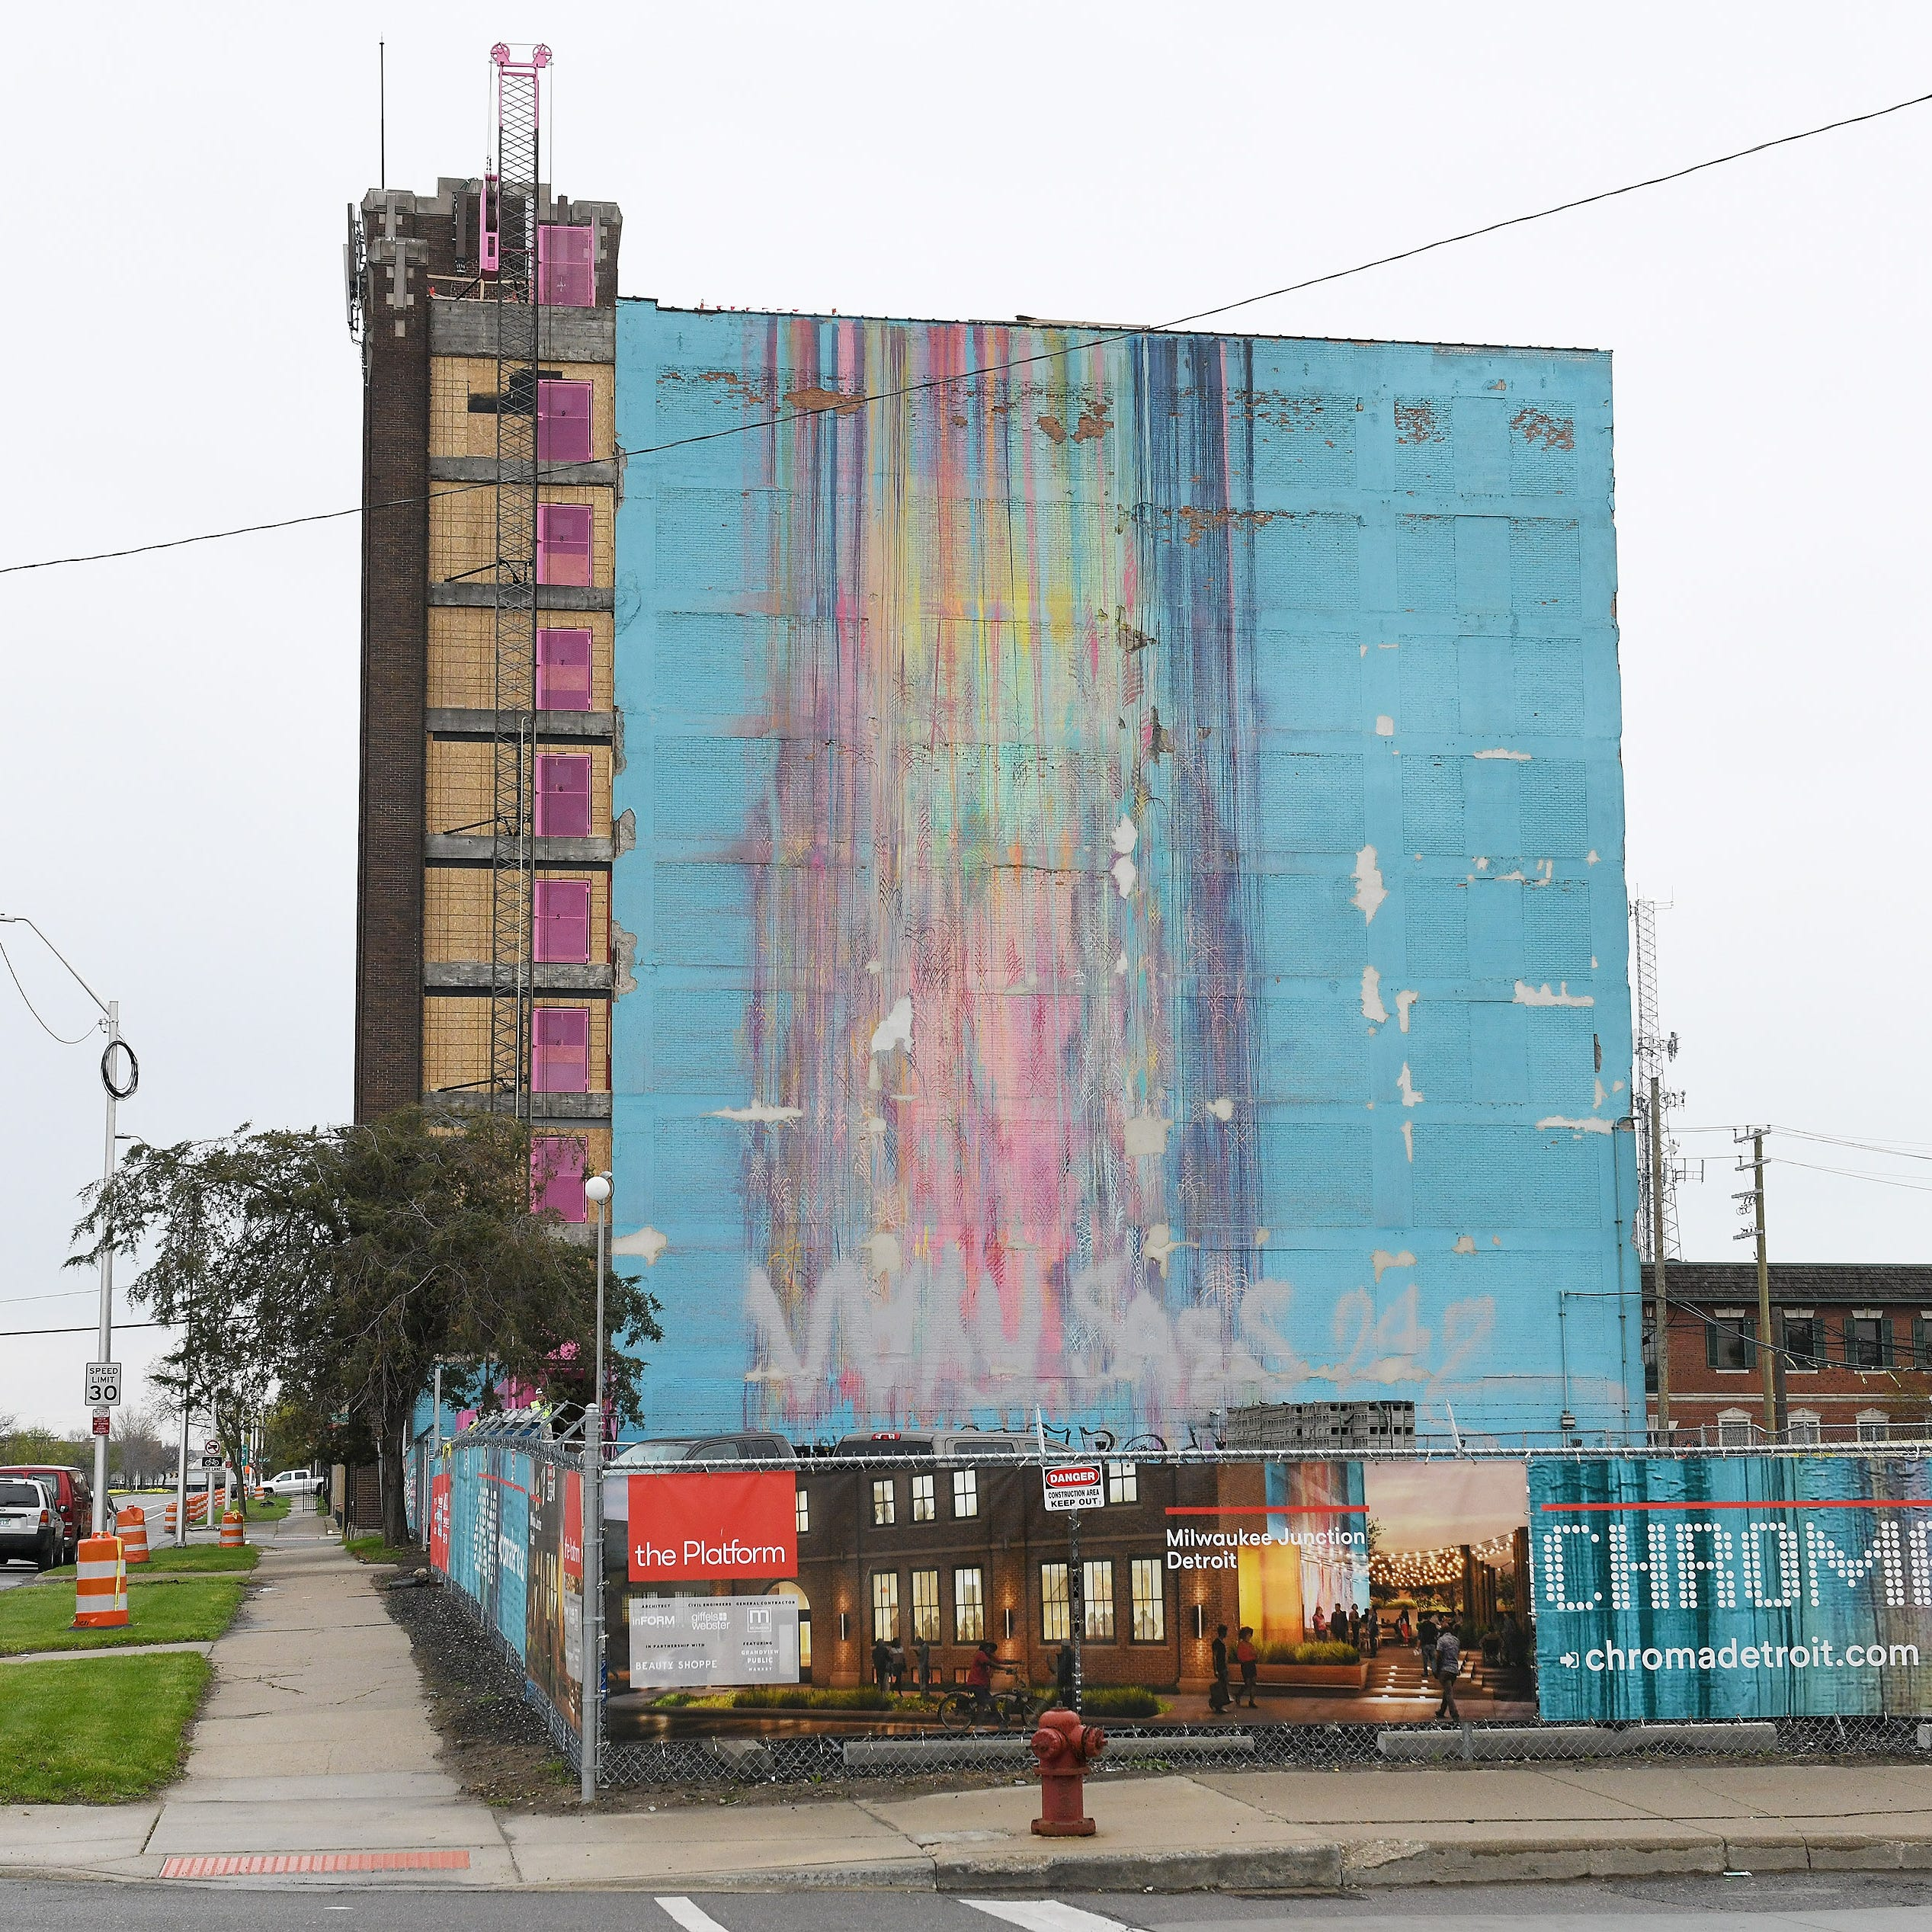 Developers offer peek behind rainbow mural in Detroit